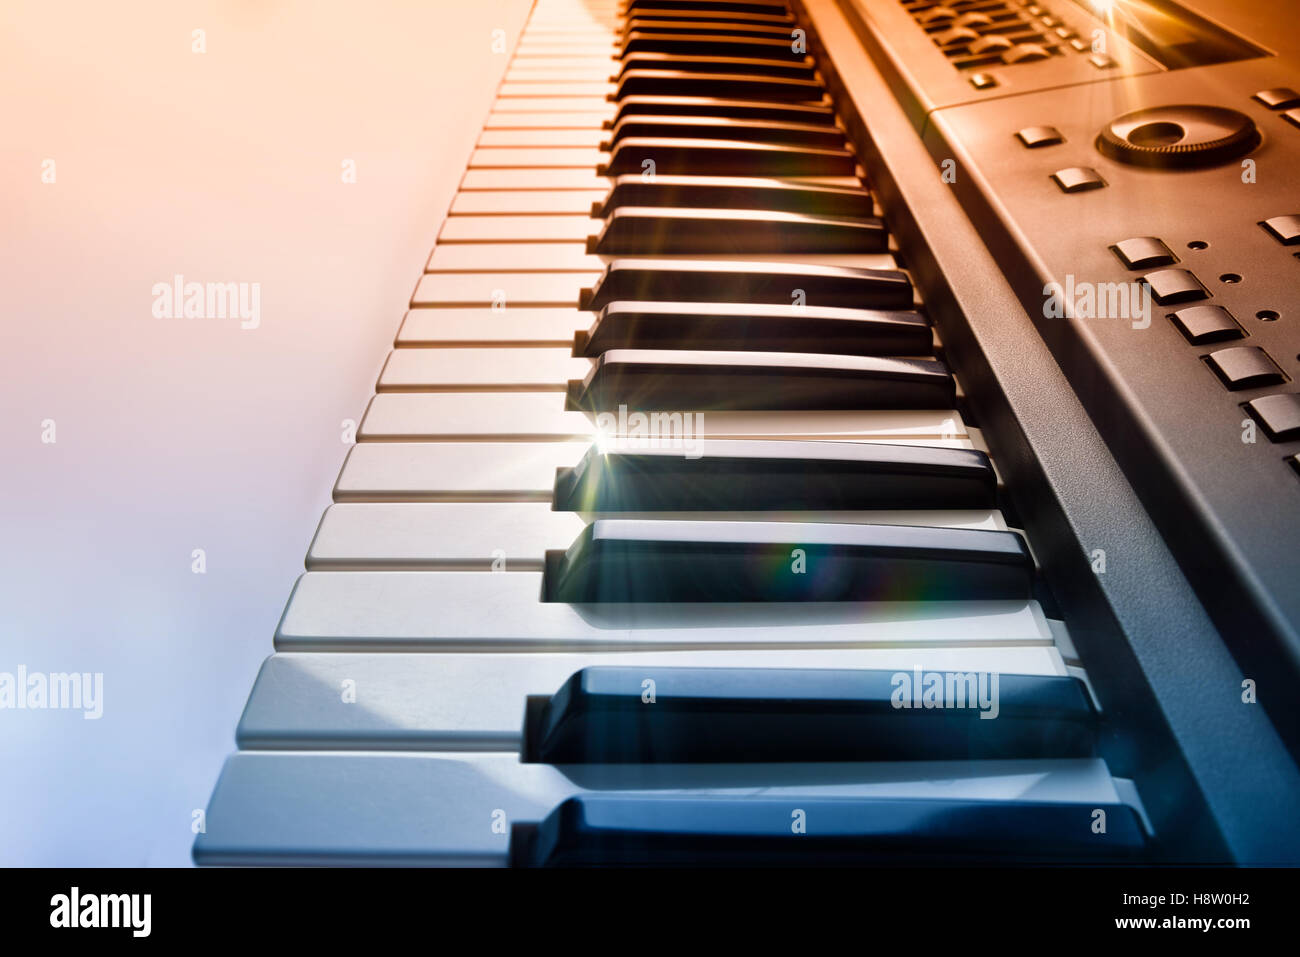 Synthesizer keyboard with shine and blue red gradient. Horizontal Composition.Elevated side view - Stock Image